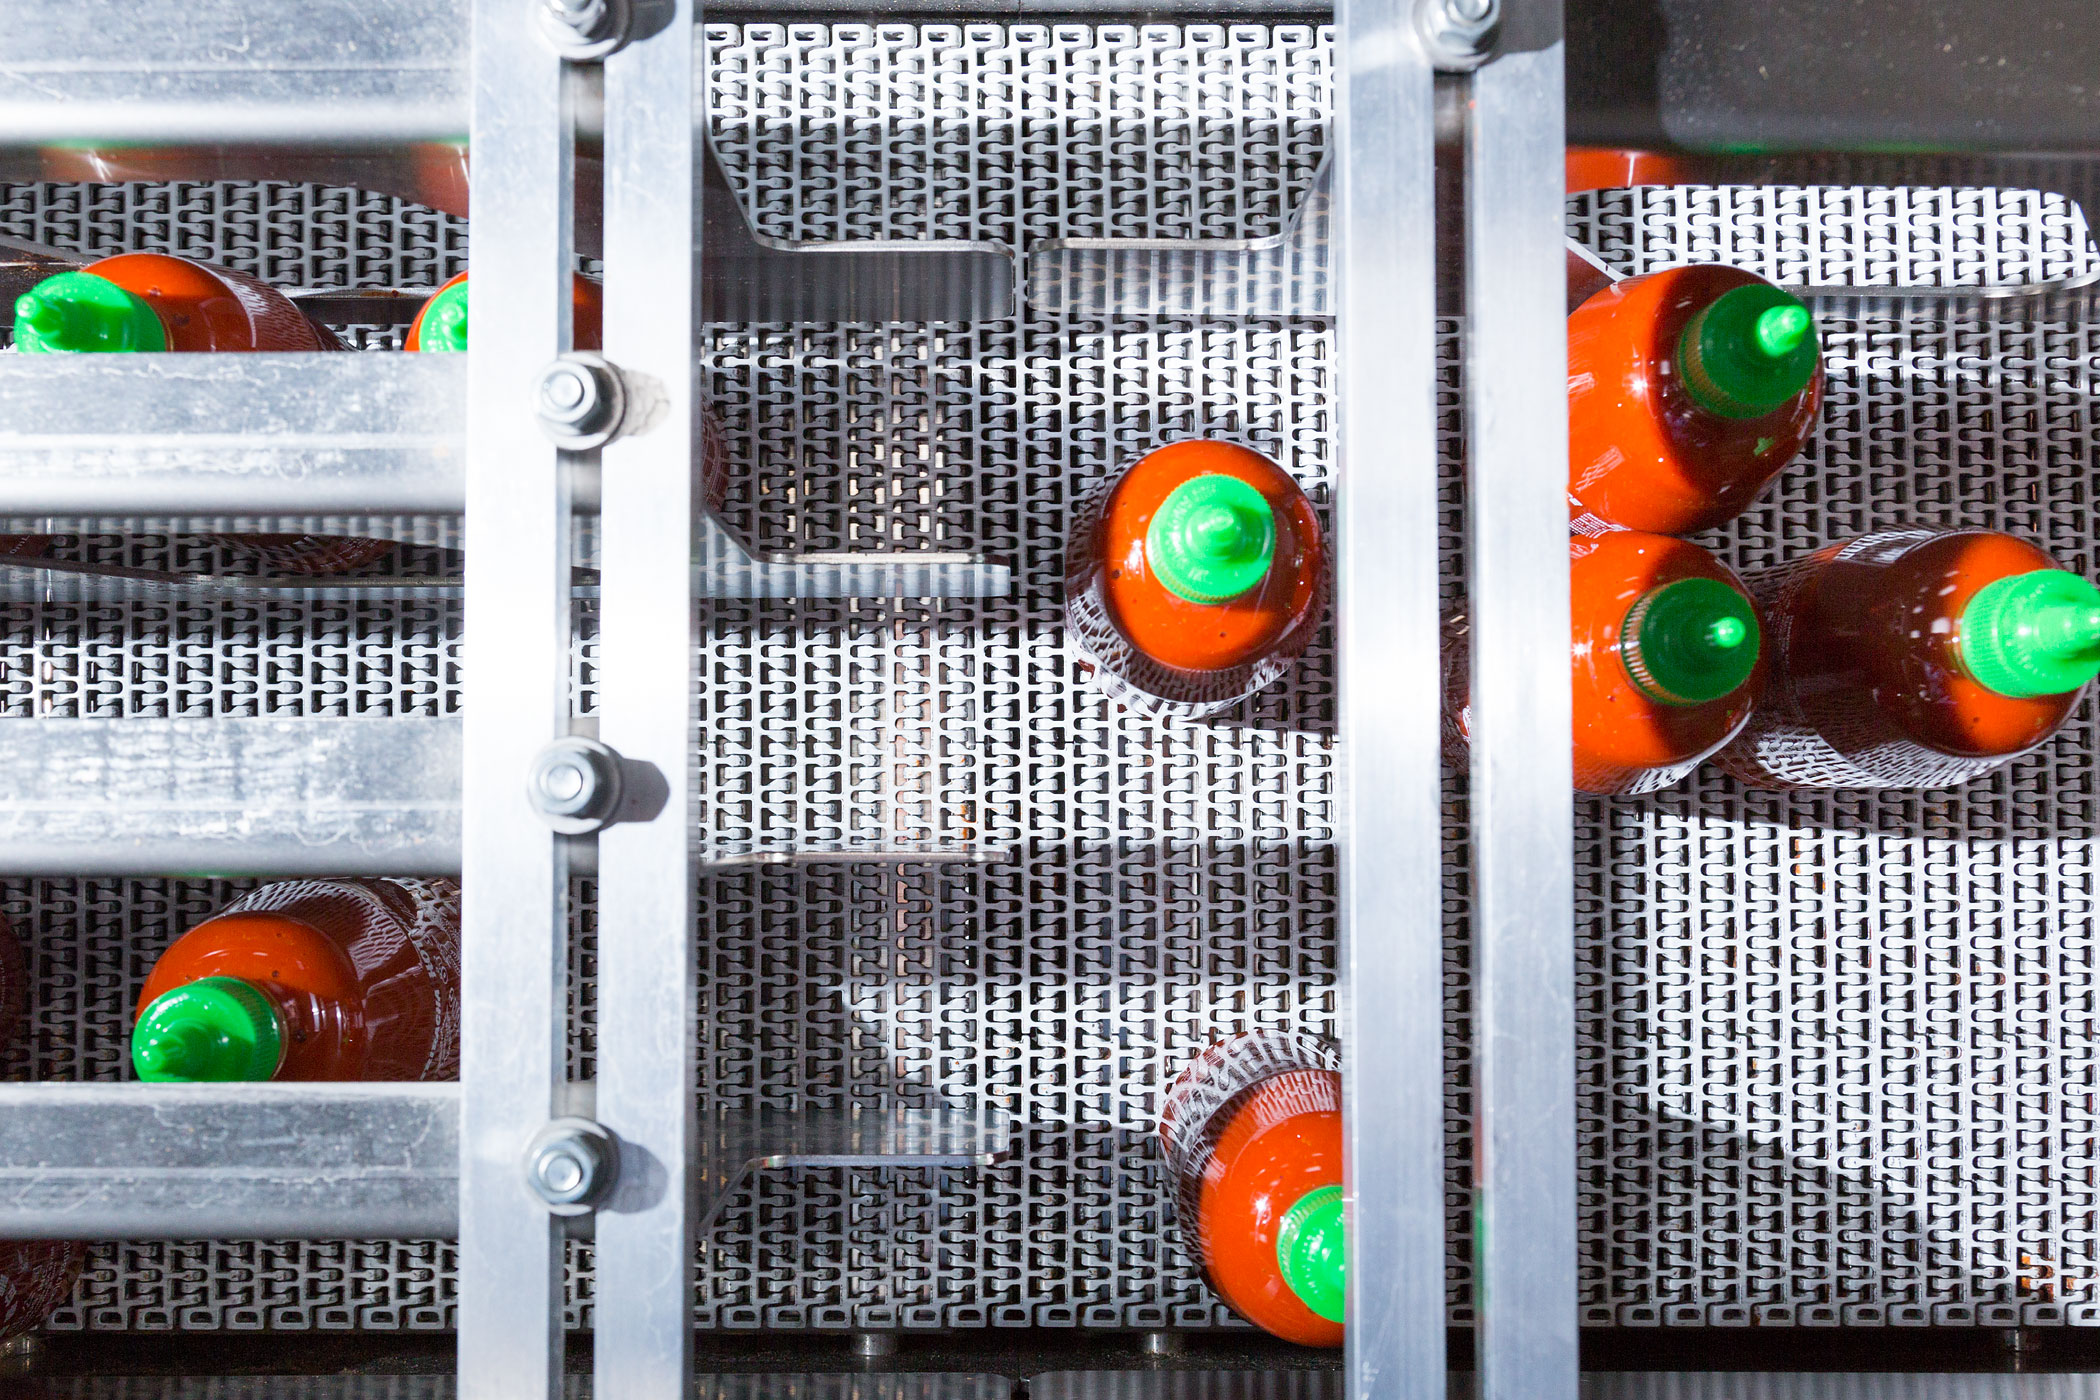 Filled and capped bottles of Sriracha move along an assembly line on their way to be boxed and shipped.